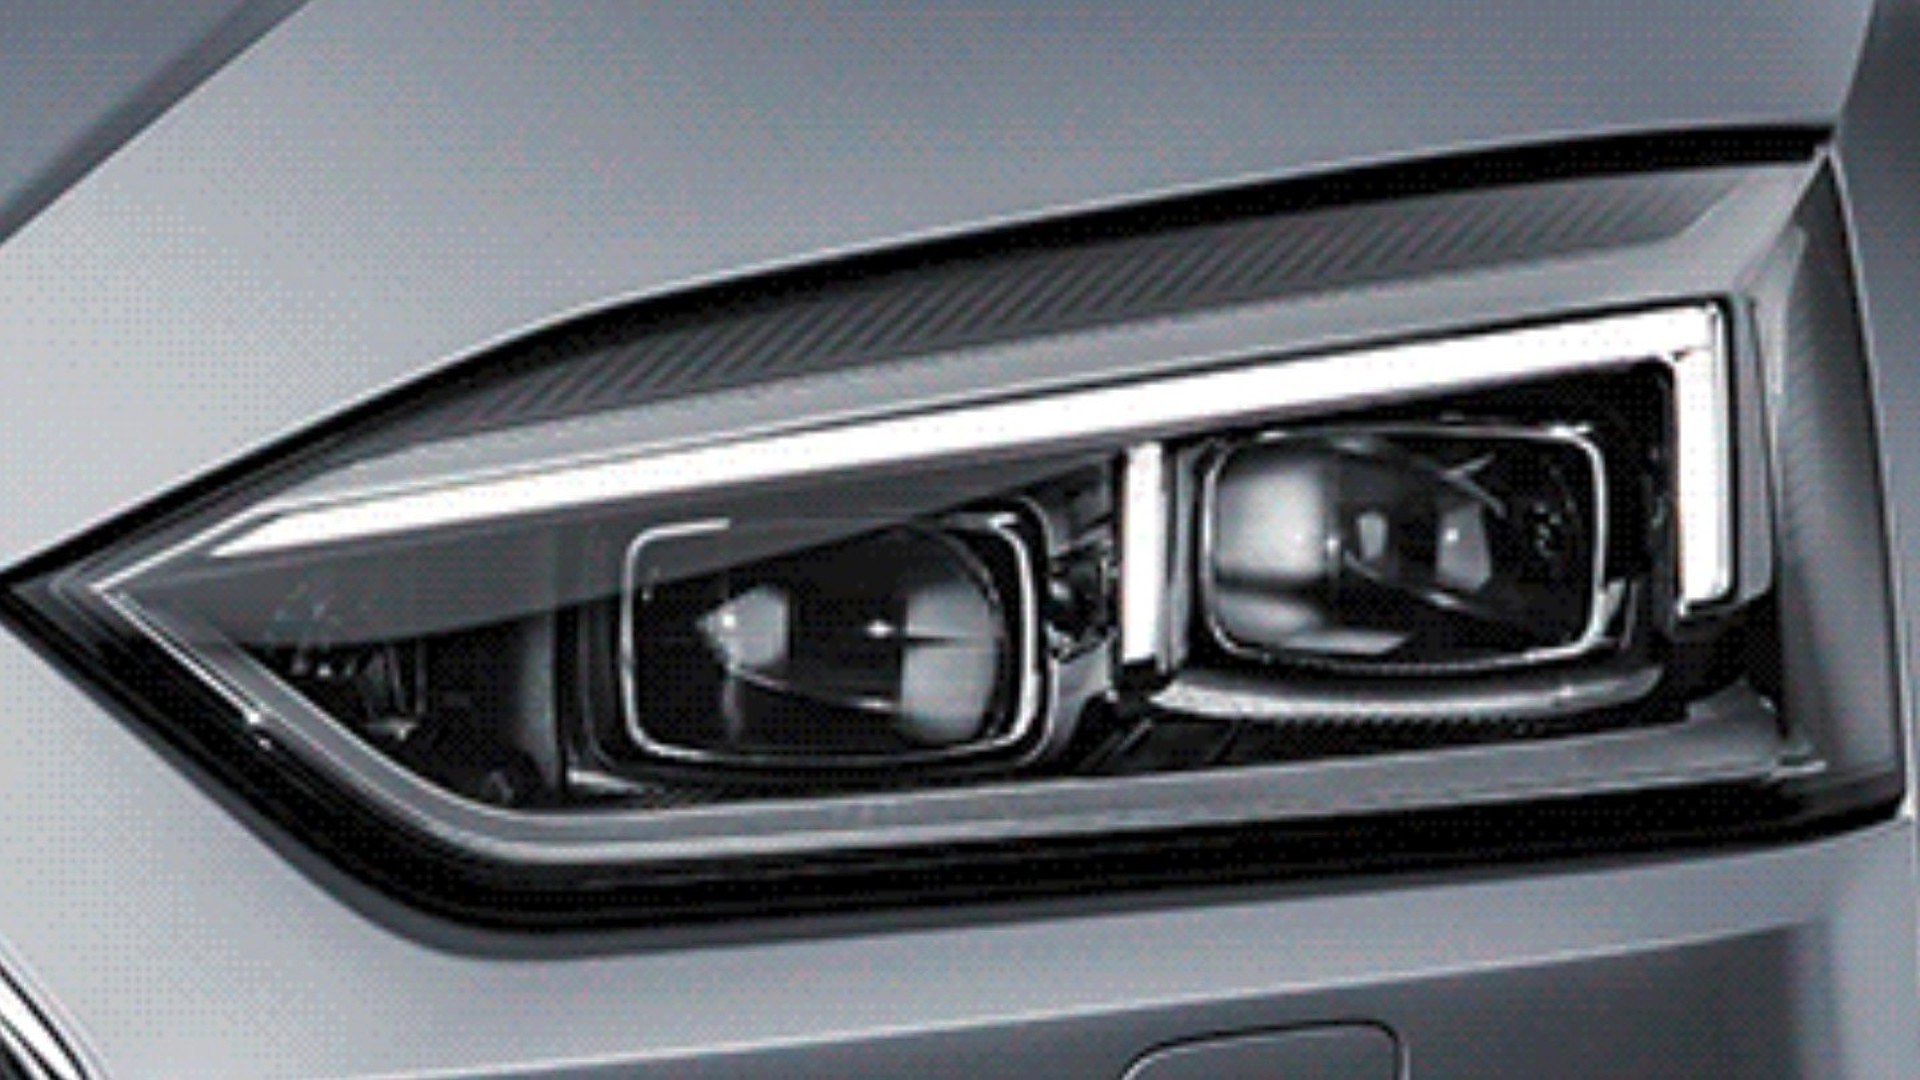 2017 Audi A5 Coupe Headlights Revealed